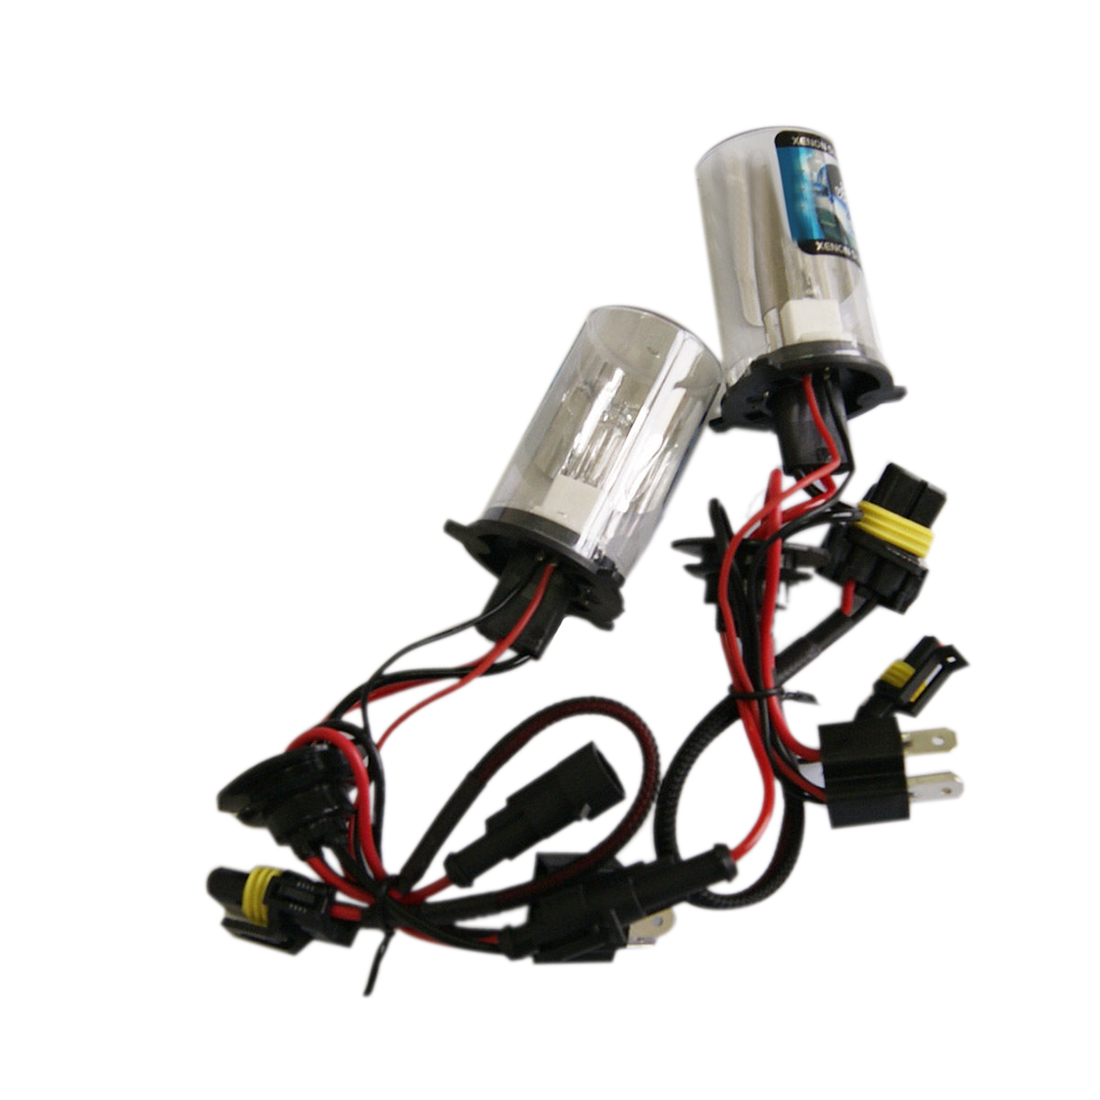 Tonewan Double Light 12V 35W <font><b>H4</b></font>-2 <font><b>Xenon</b></font> Fog Tail Turn DRL Head <font><b>Bulb</b></font> <font><b>HID</b></font> image